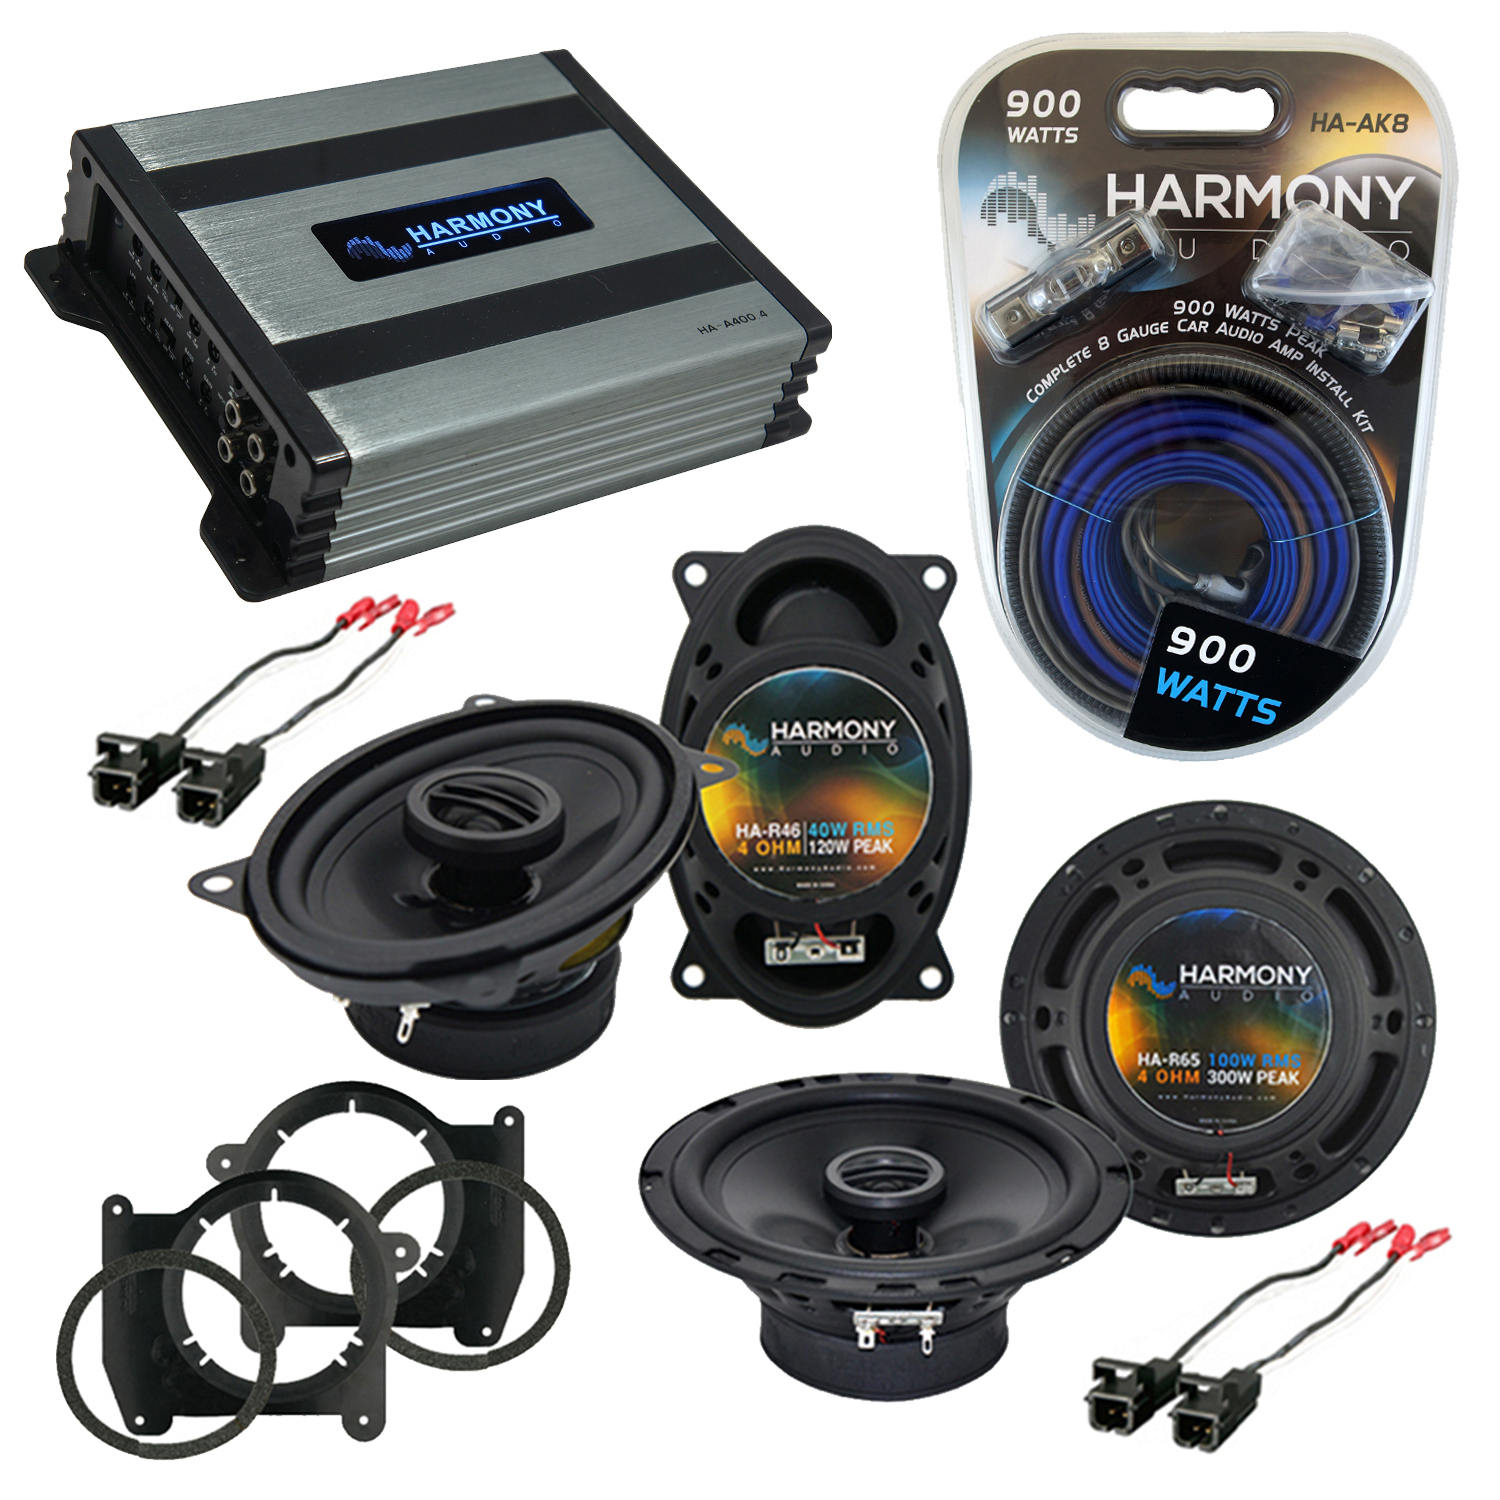 Compatible with Chevy Blazer 1998-2005 OEM Speaker Replacement Harmony (2) R46 R65 & Harmony HA-A400.4 Amp